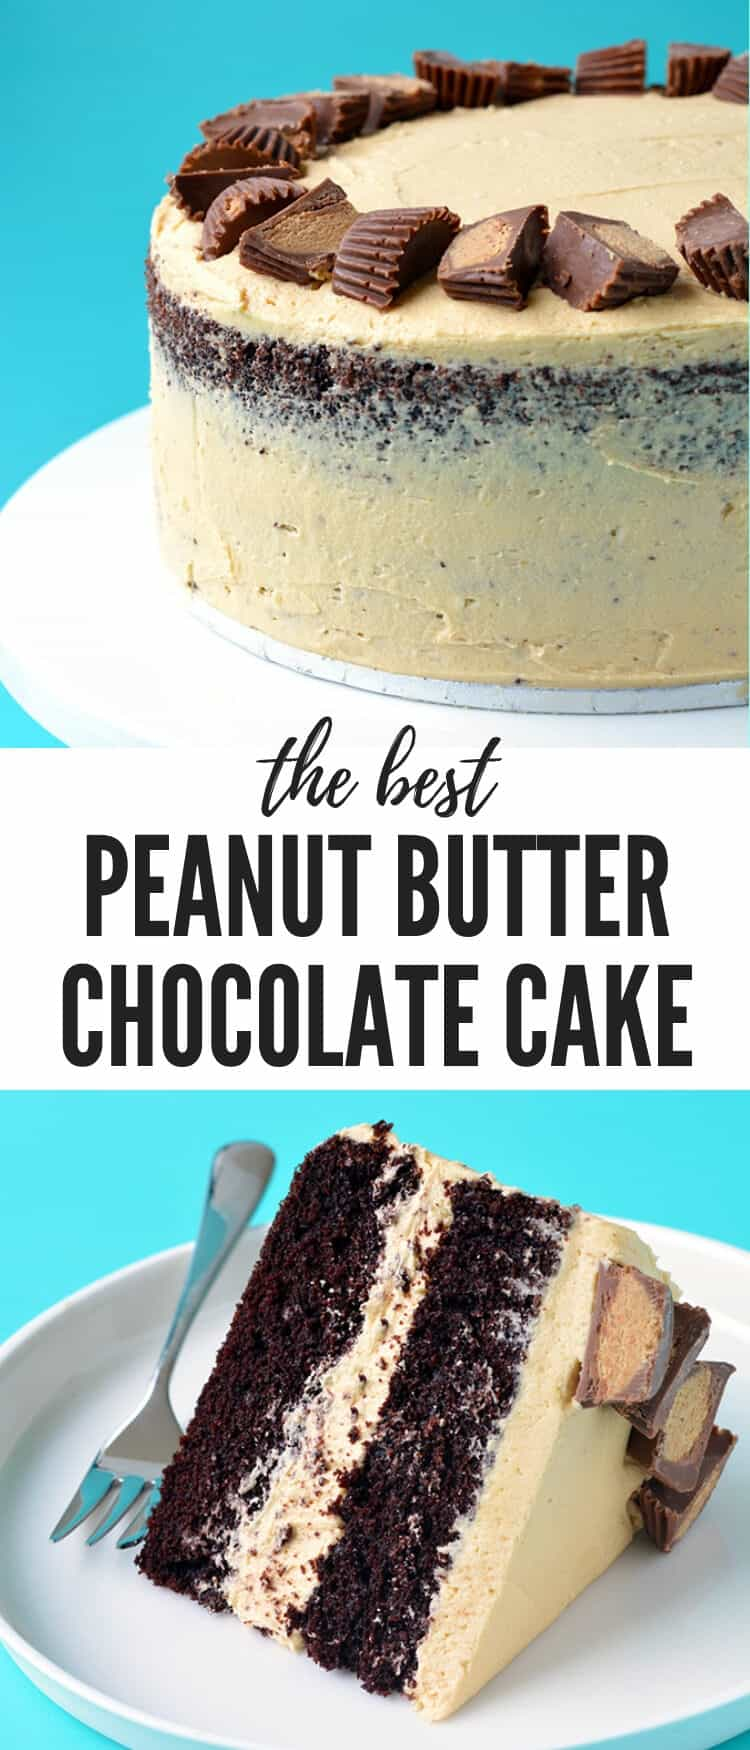 A deliciously, easy Peanut Butter Chocolate Layer Cake. Two layers of soft, chocolate cake covered in creamy peanut butter frosting and topped with Reese's peanut butter cups. Recipe from sweetestmenu.com #cake #chocolate #peanutbutter #dessert #birthday